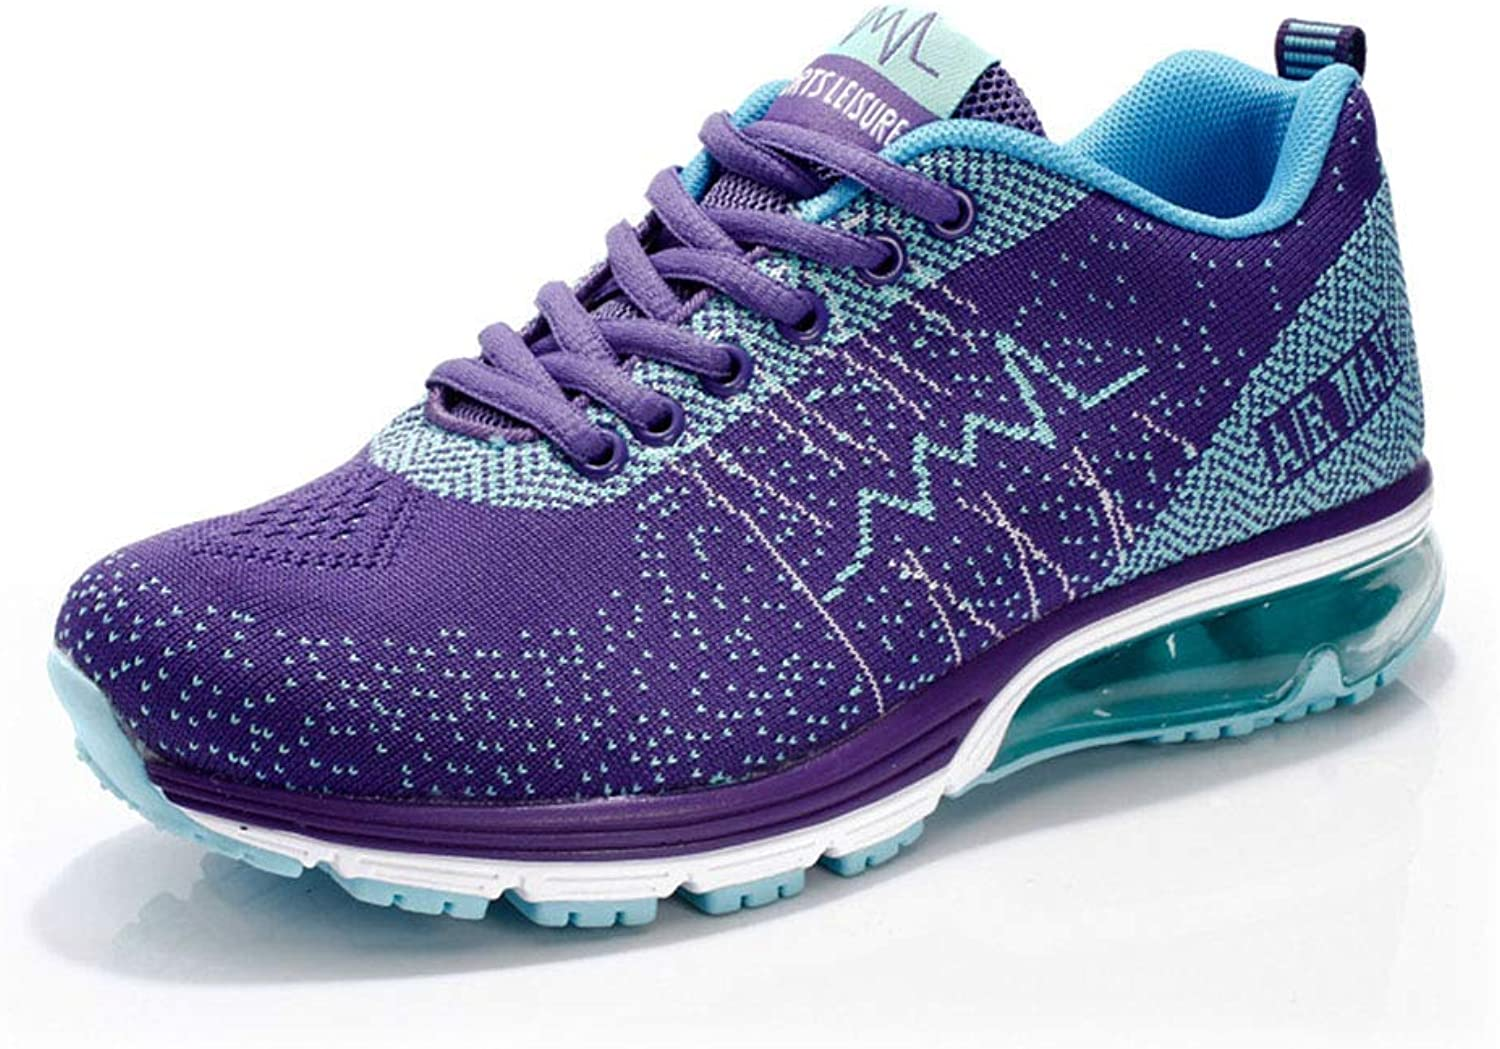 Dsx Trainers Sports shoes Spring and Summerbreathable Casual shoes Men's Running shoes (22.5-27.0Cm), purple, 42EU